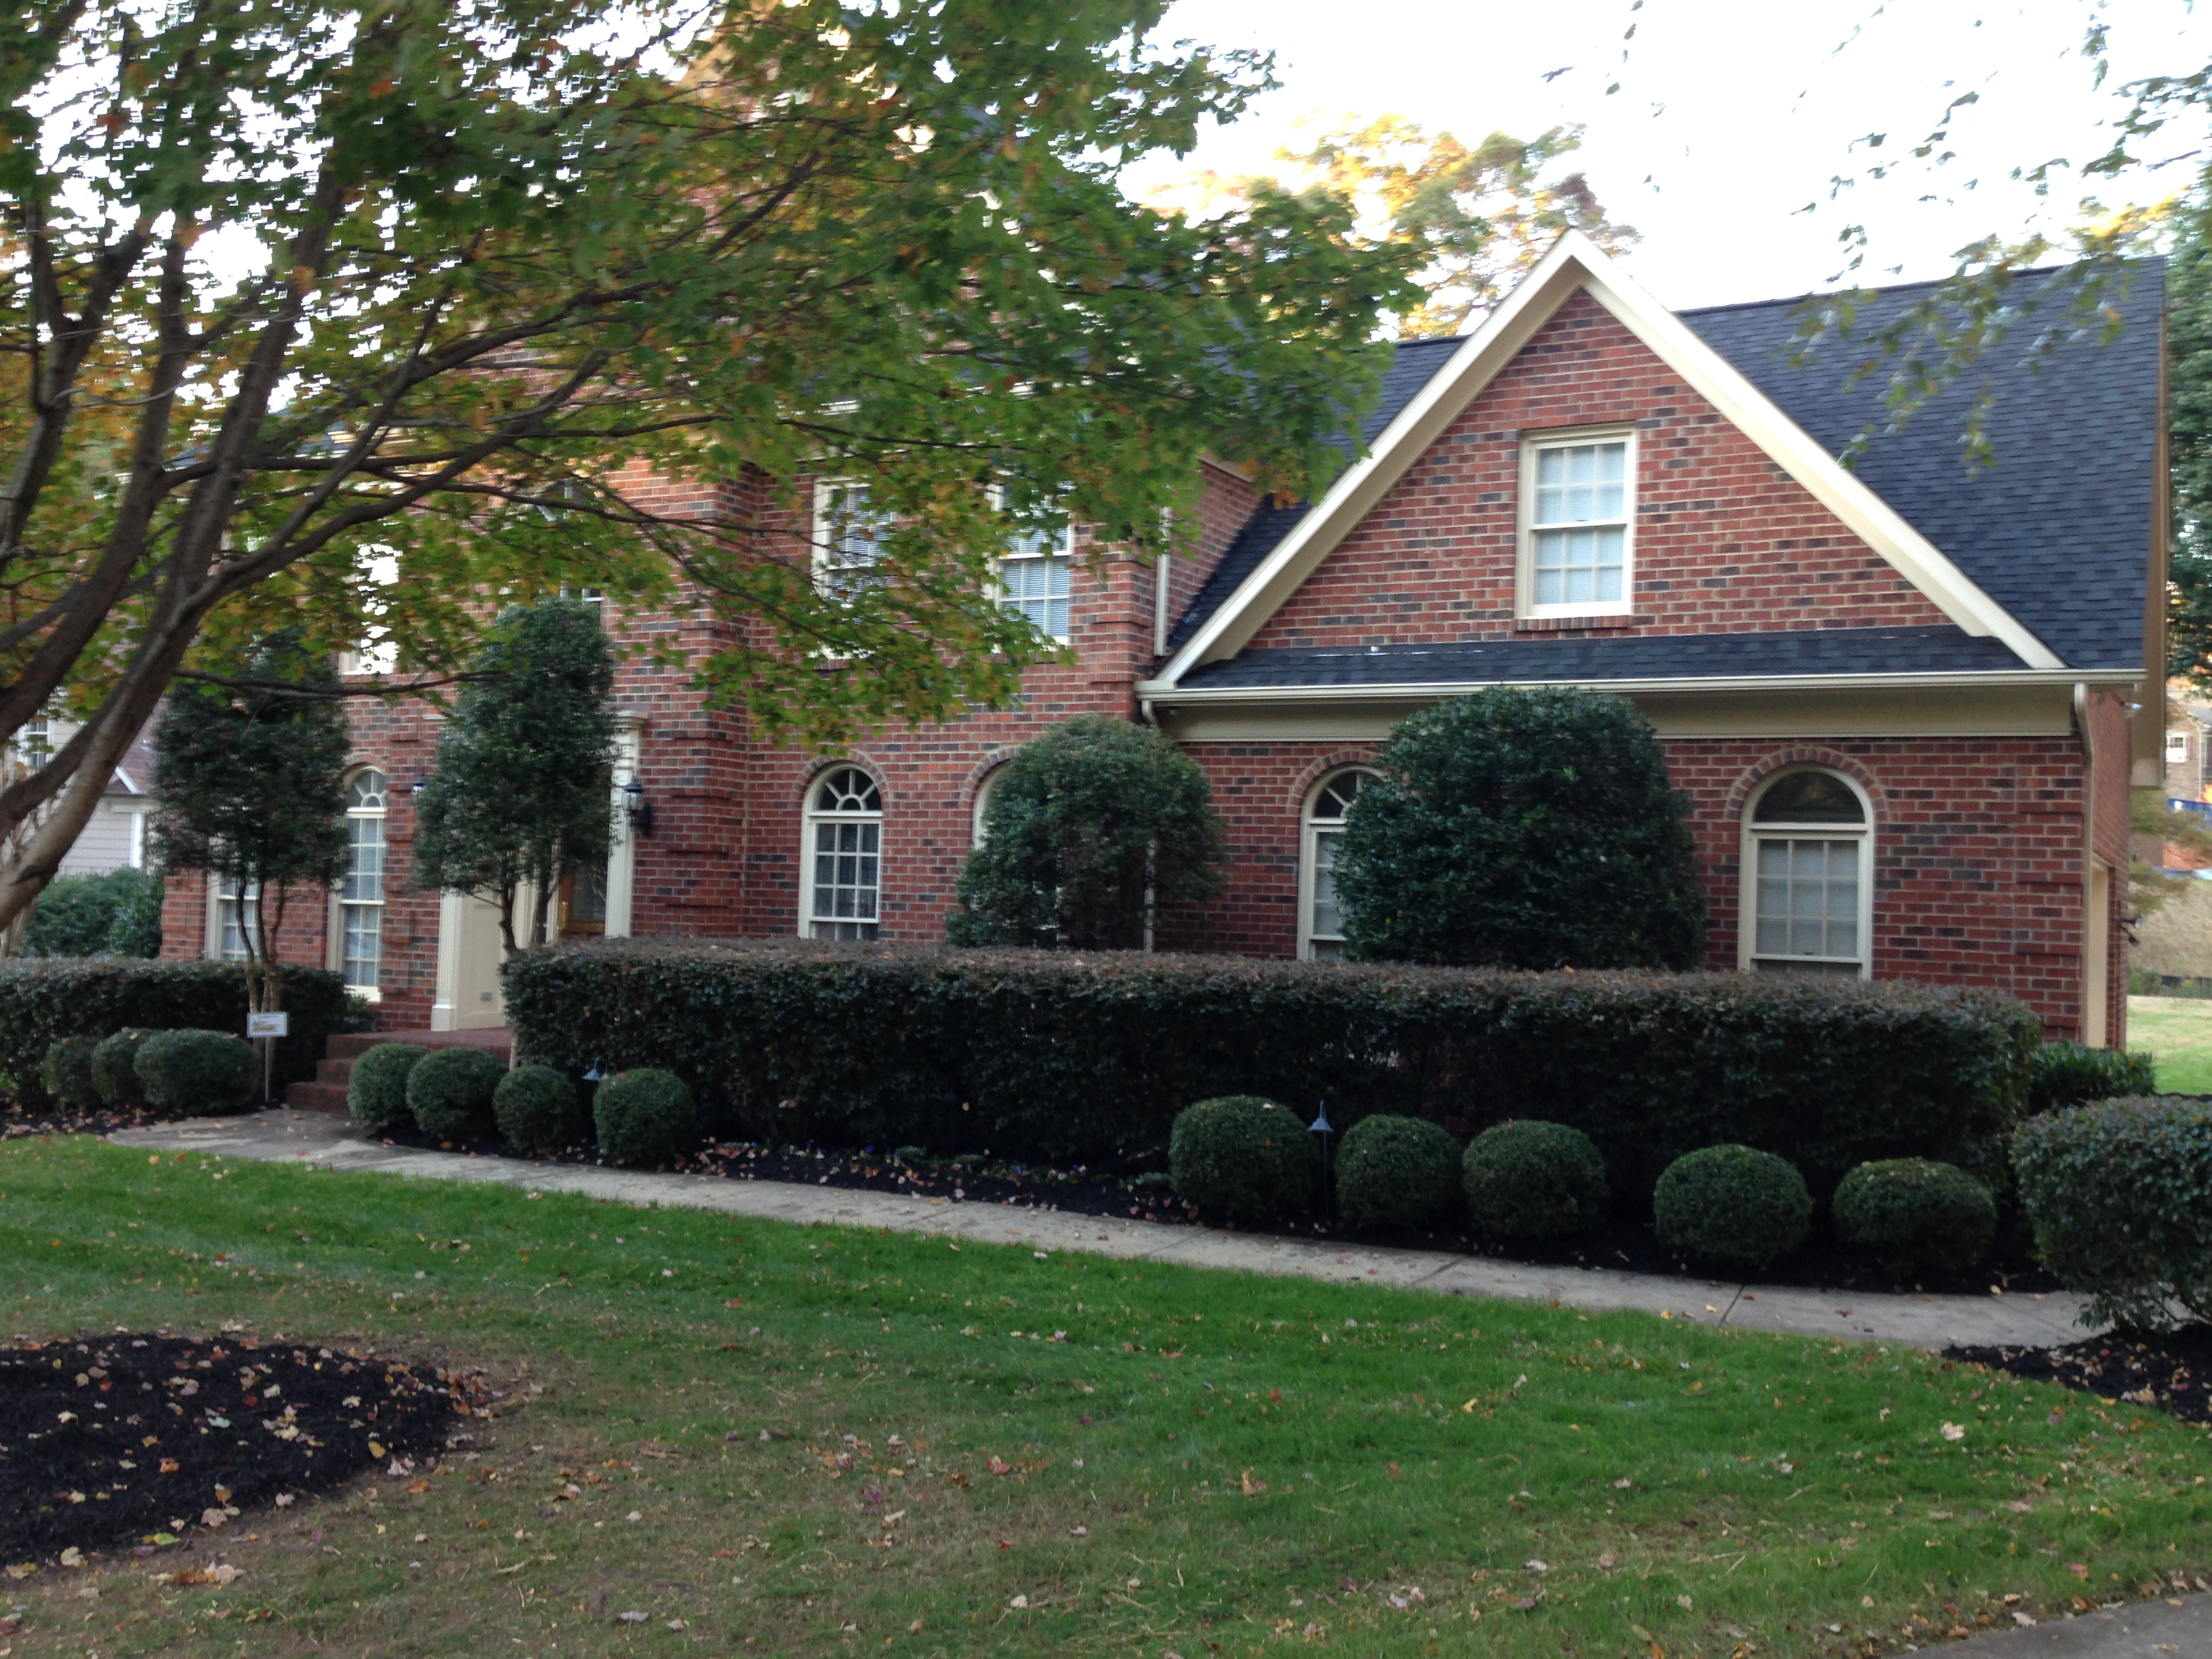 Charlotte Residential Landscaping Services